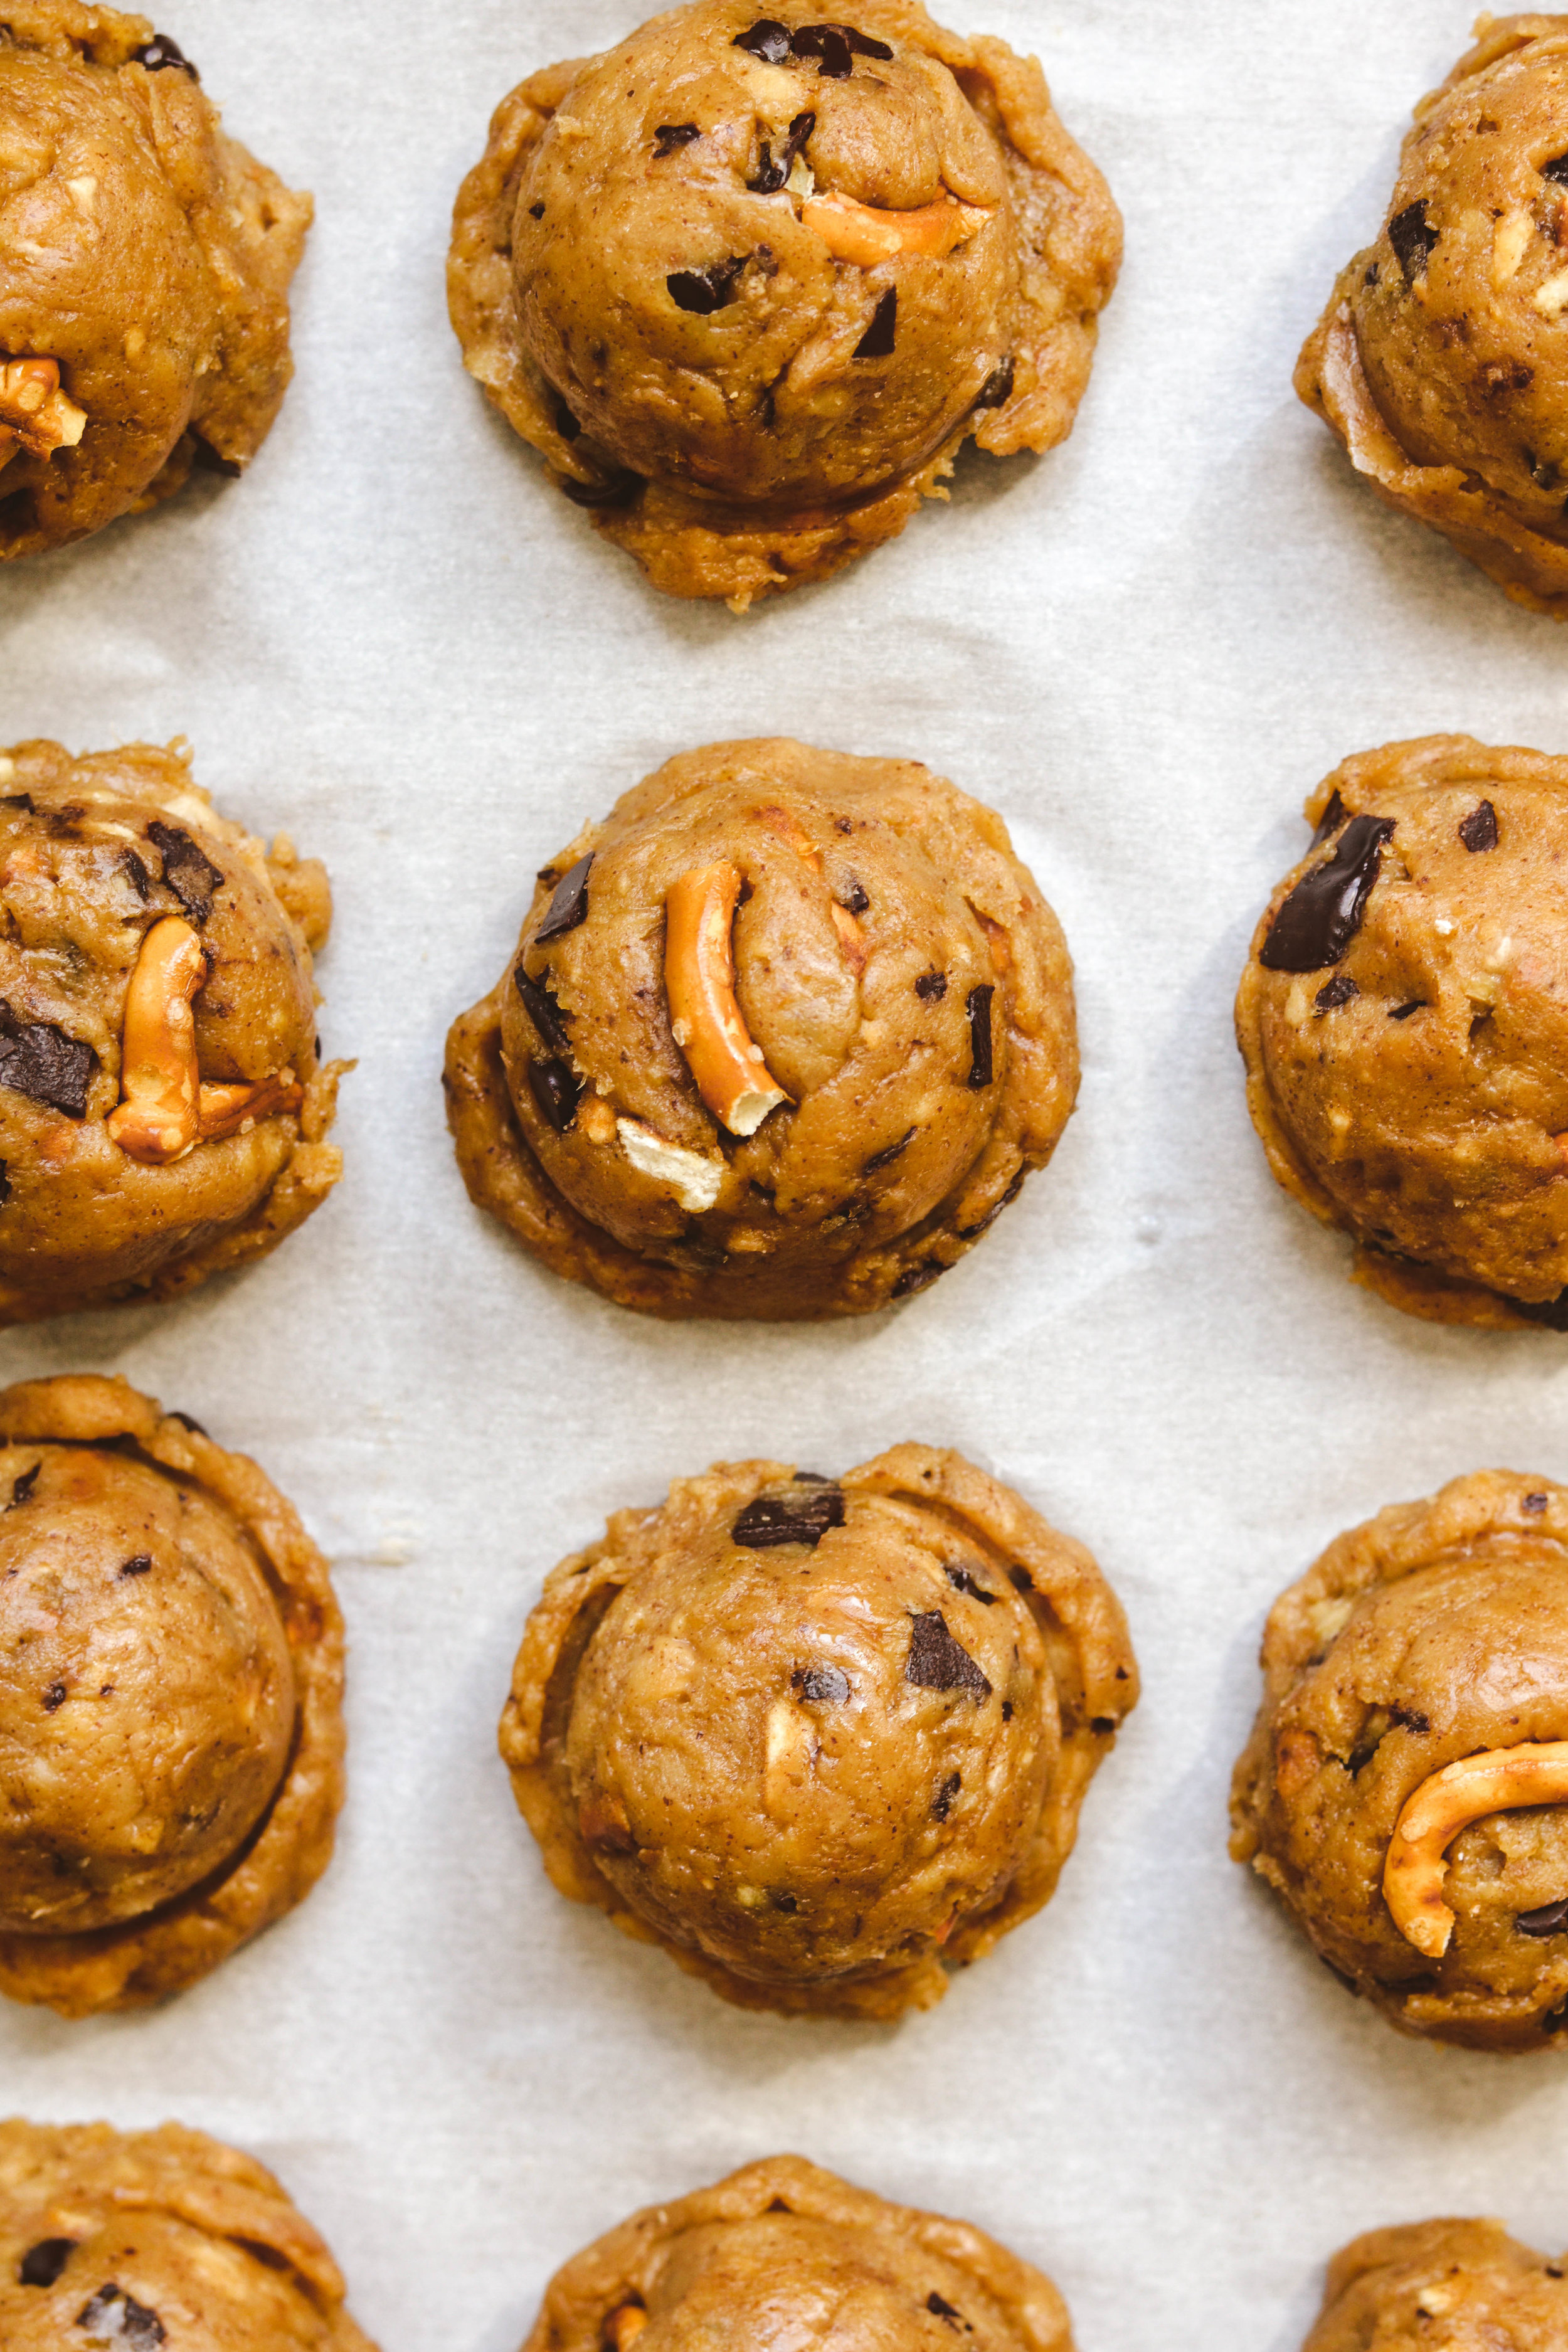 Chocolate Chip Chickpea Cookies method